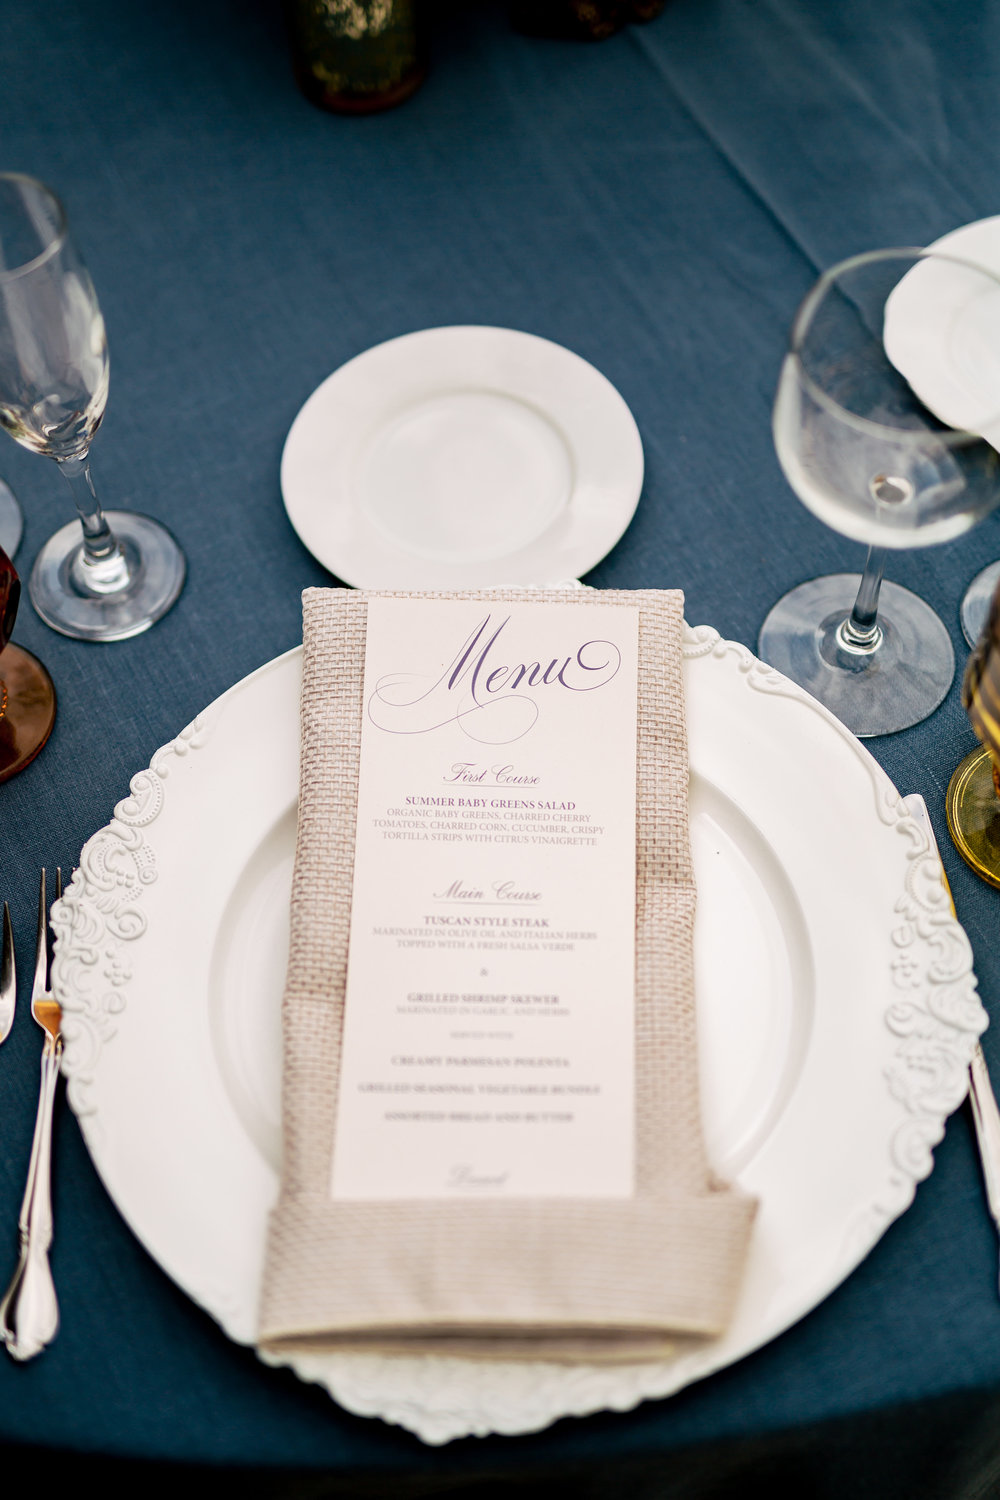 www.santabarbarawedding.com | Rewind Photography | Events by M and M | Santa Barbara Historical Museum | Place Setting